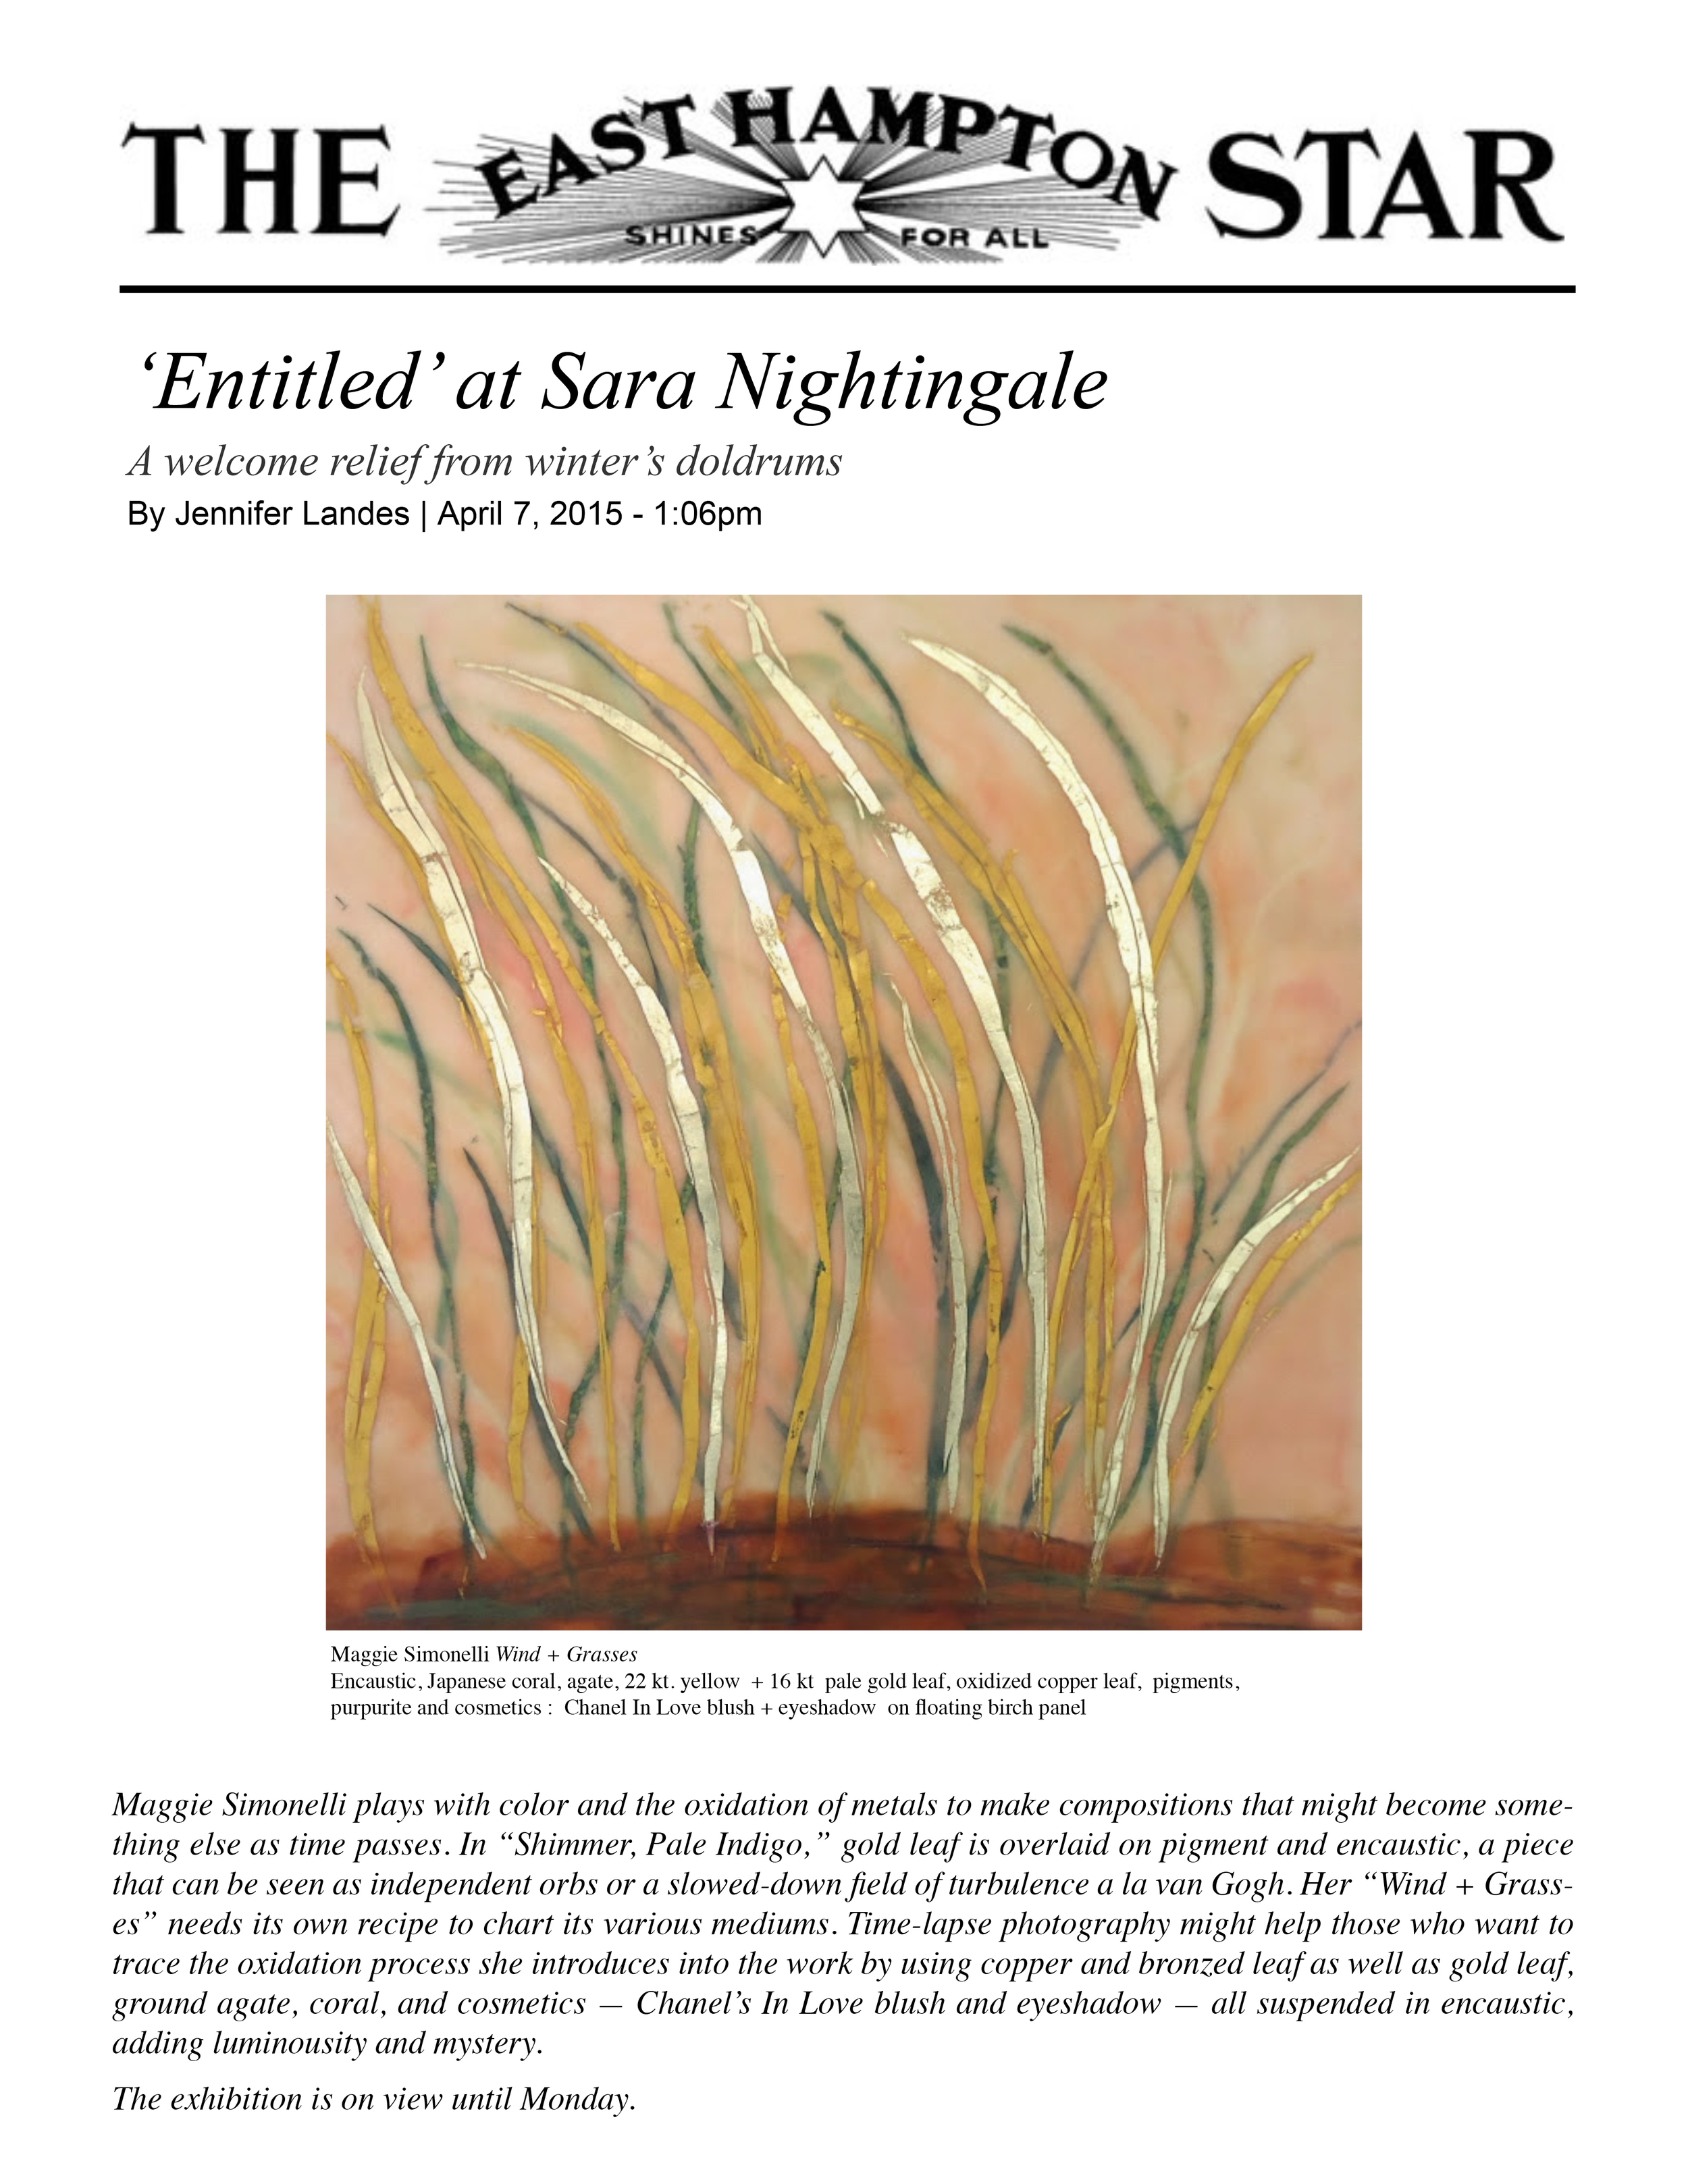 Excerpt from:  THE EAST HAMPTON STAR     ' Entitled ' at Sara Nightingale Gallery  A welcome relief from winter's doldrums  By  Jennifer Landes  | April 7, 2015 - 1:06pm                        For full article :  http://bit.ly/1Ft9QkQ